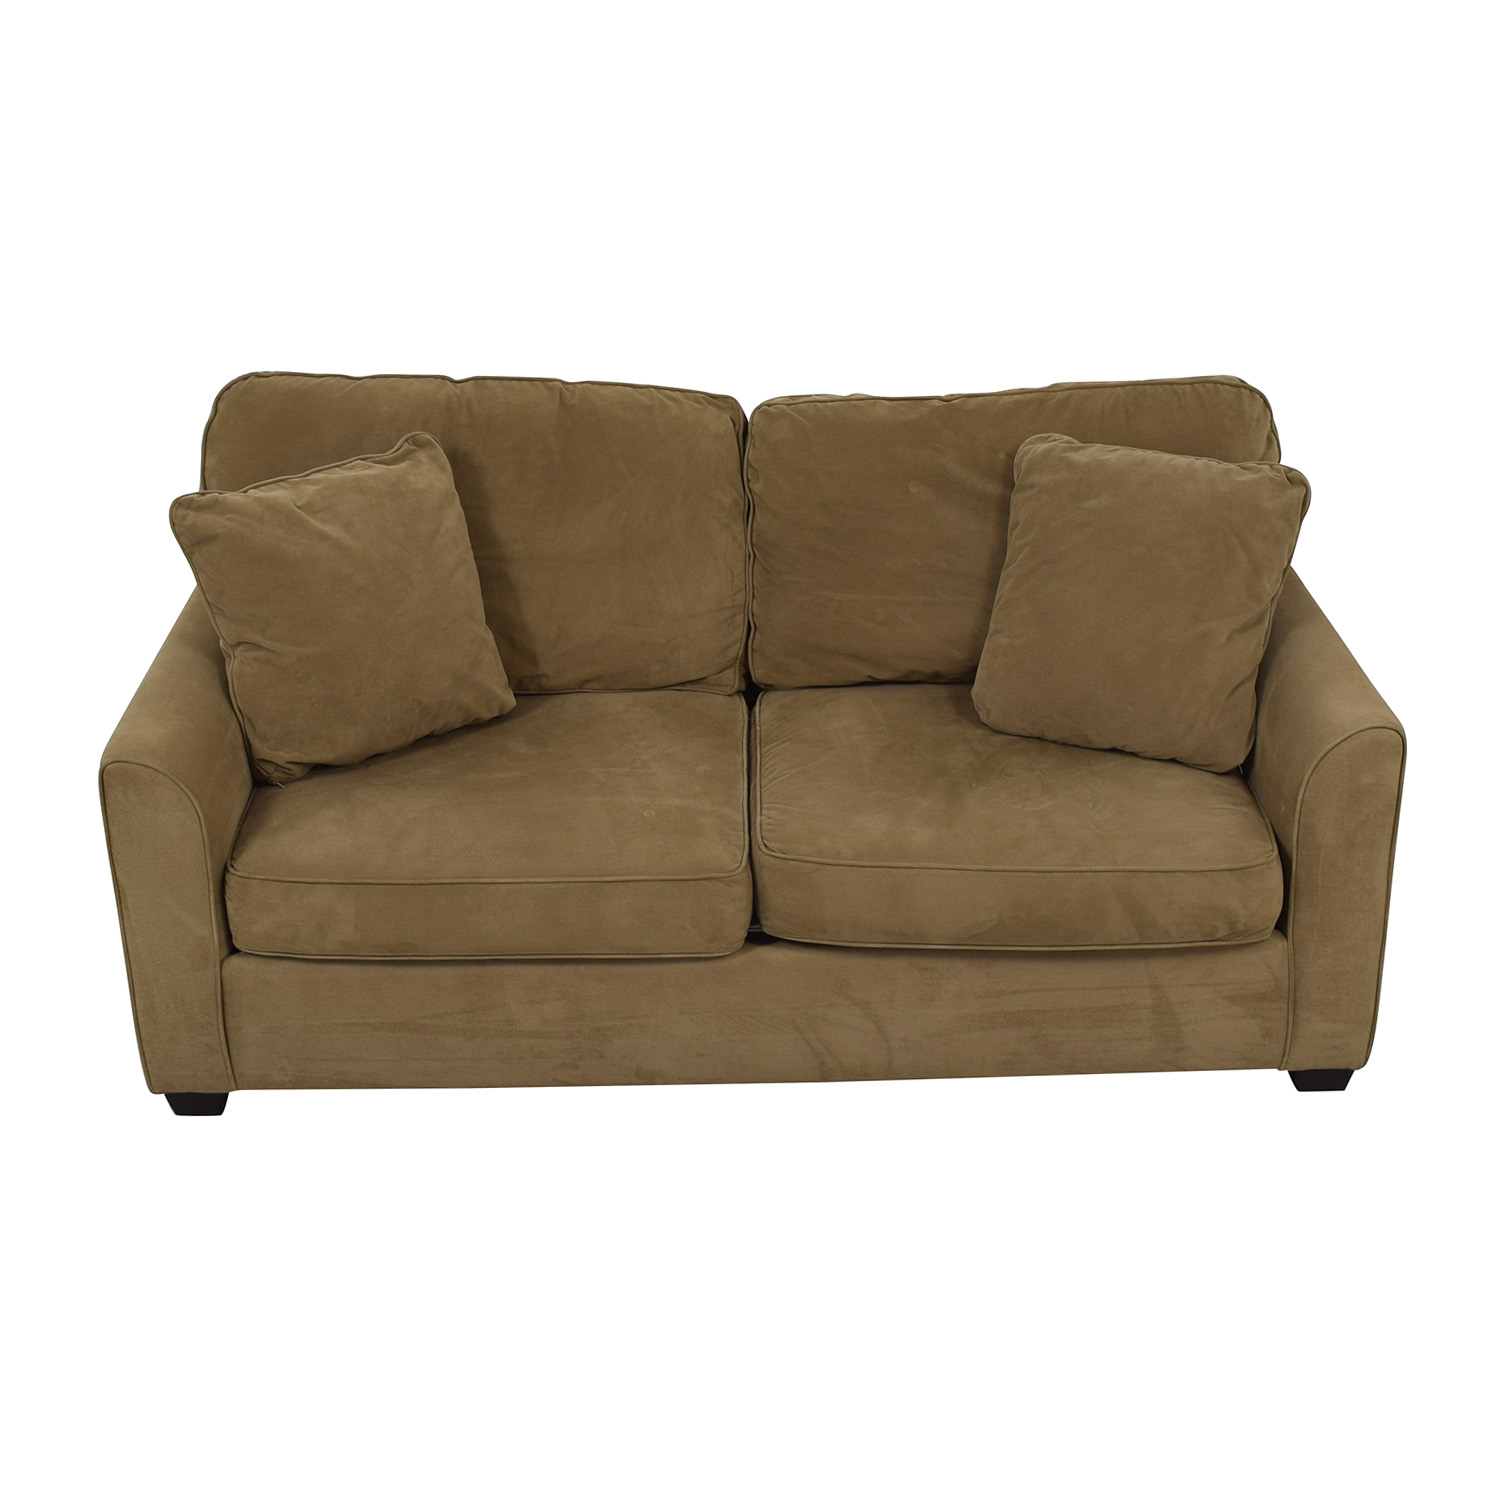 Admirable 82 Off Jc Penney Jc Penney Two Cushion Loveseat Sofas Beutiful Home Inspiration Ommitmahrainfo